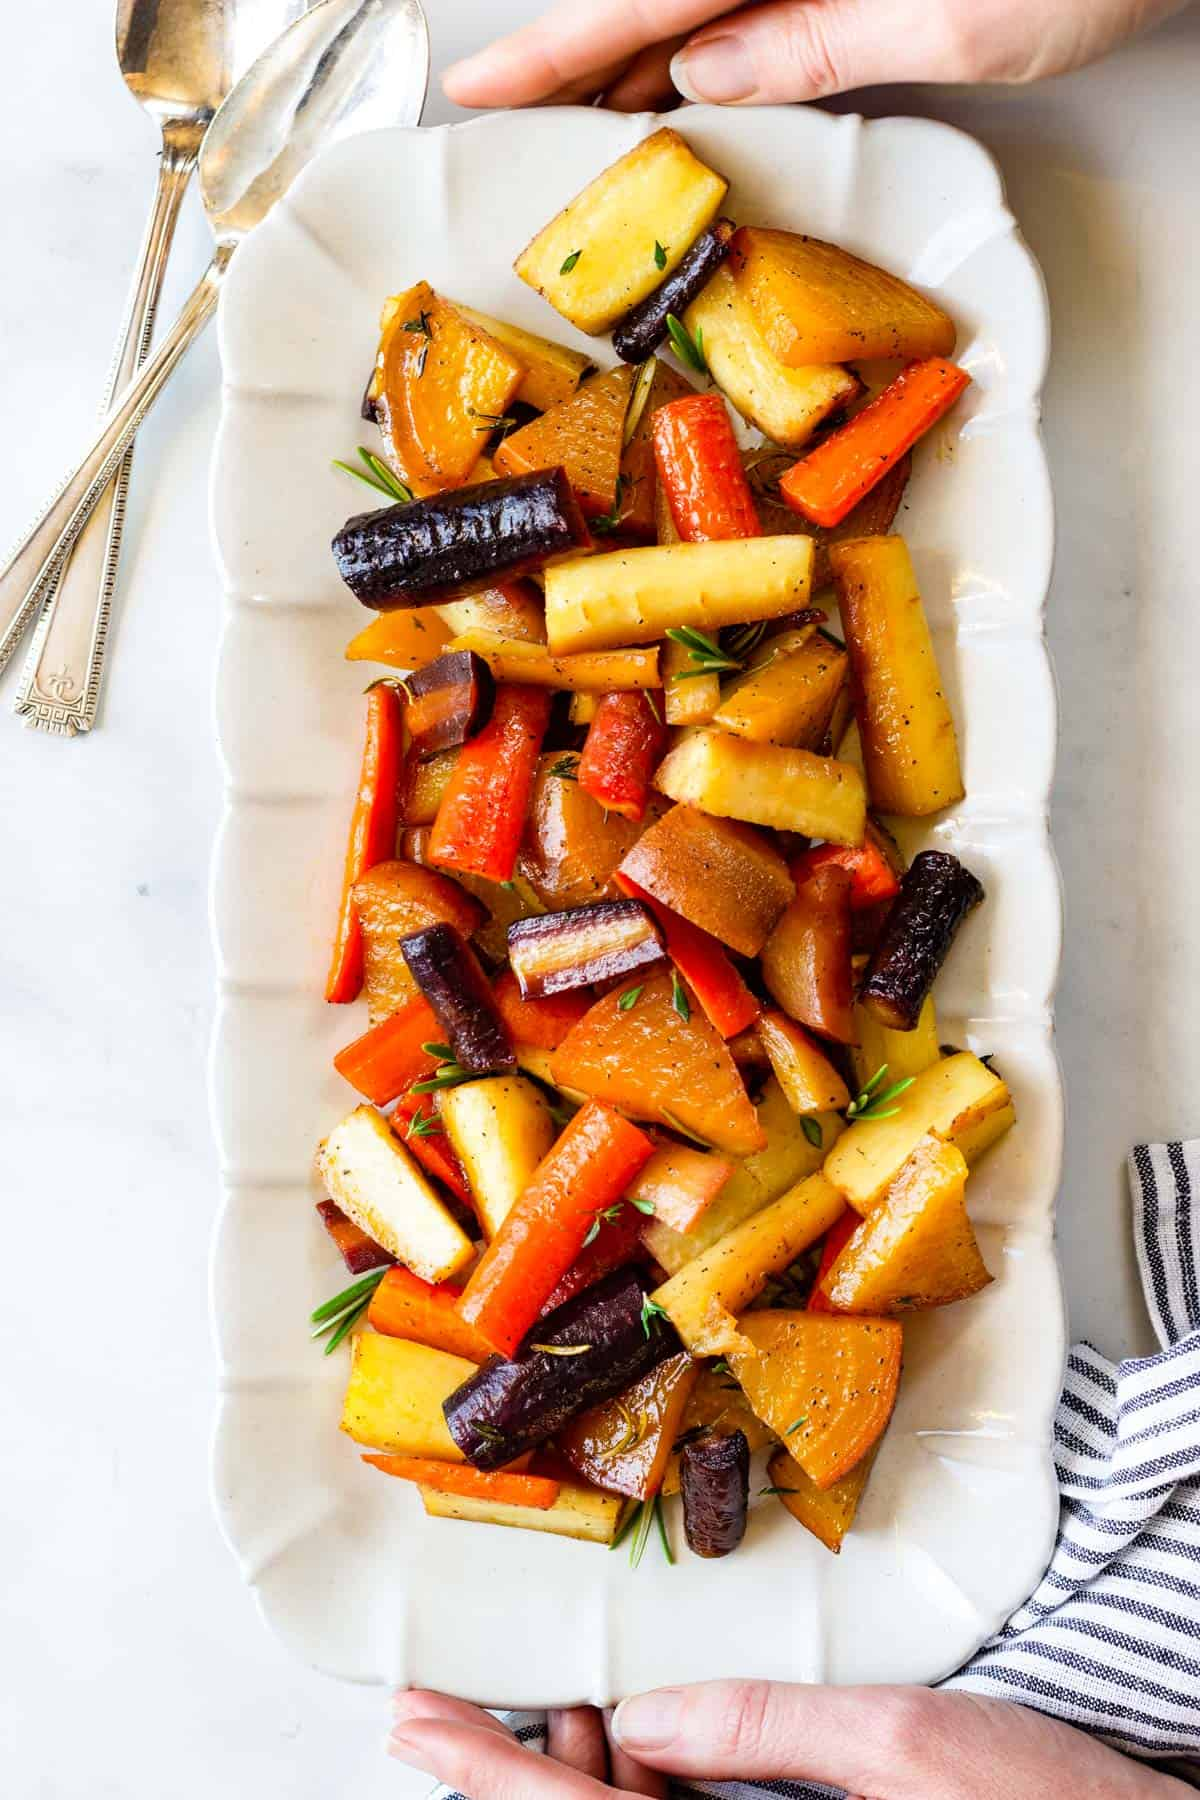 Two hands are serving a platter of roasted vegetables.